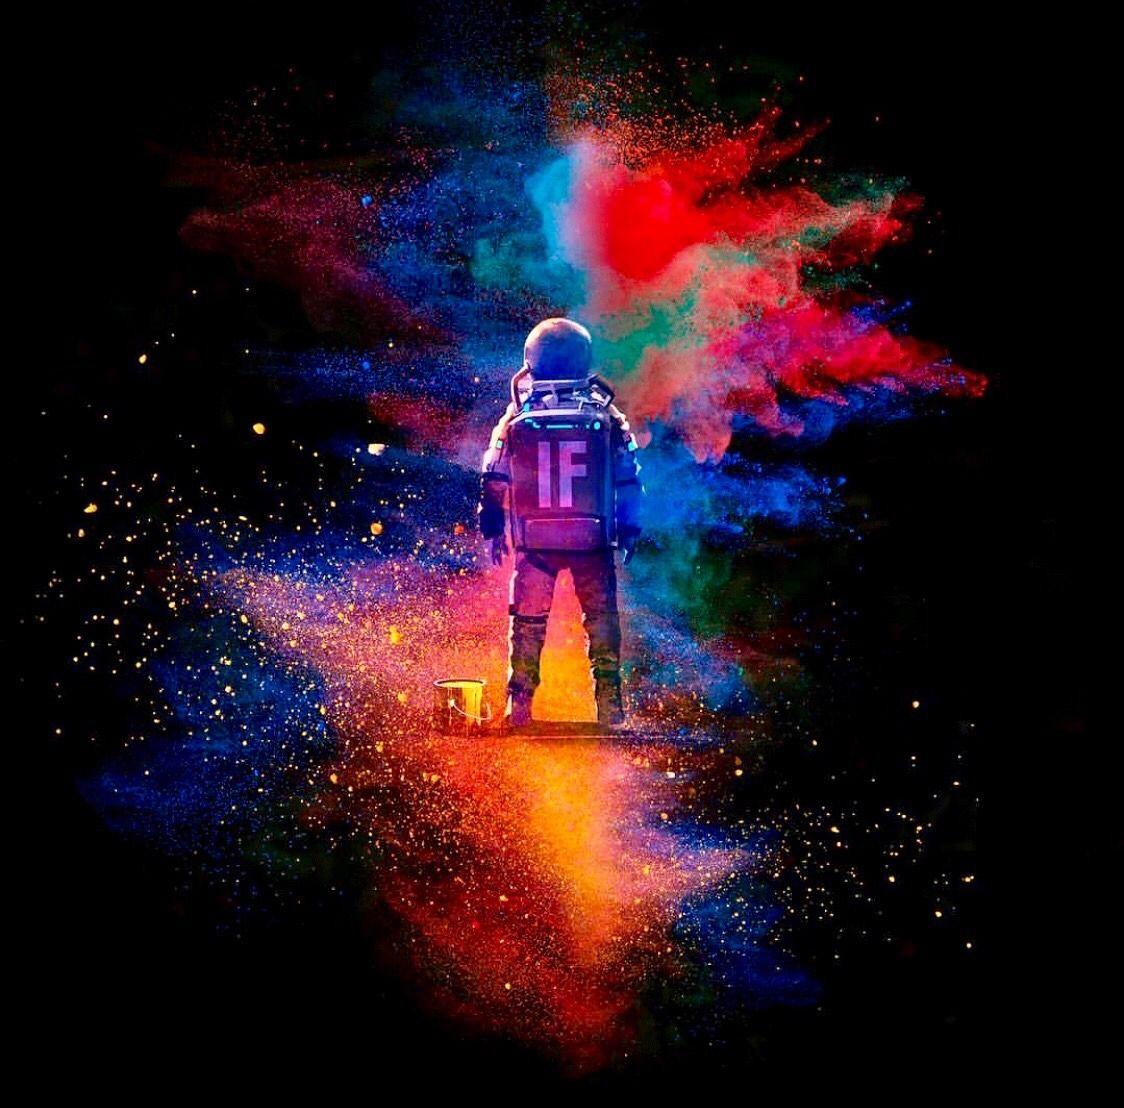 Psychedelic Astronaut Wallpapers Wallpaper Cave